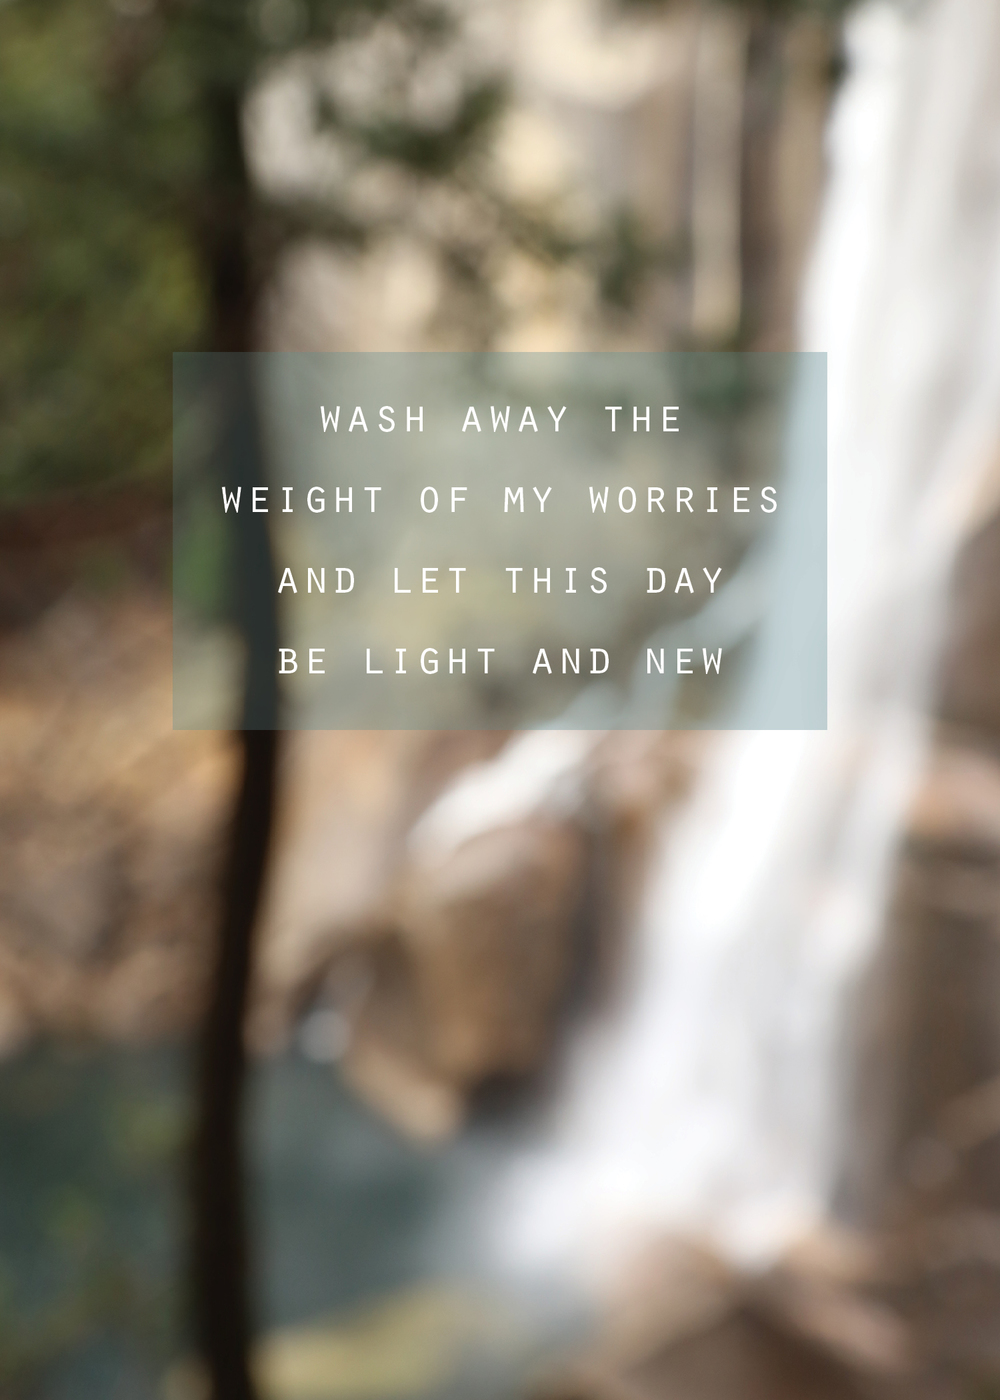 Michelle Larson   - When I want to  Refresh  my soul, there is nothing like being near flowing water, surrounded by natures' most spectacular treasures, to wash away all the clutter and chatter. (photo taken in soft focus, December 2014 - Yosemite, CA)